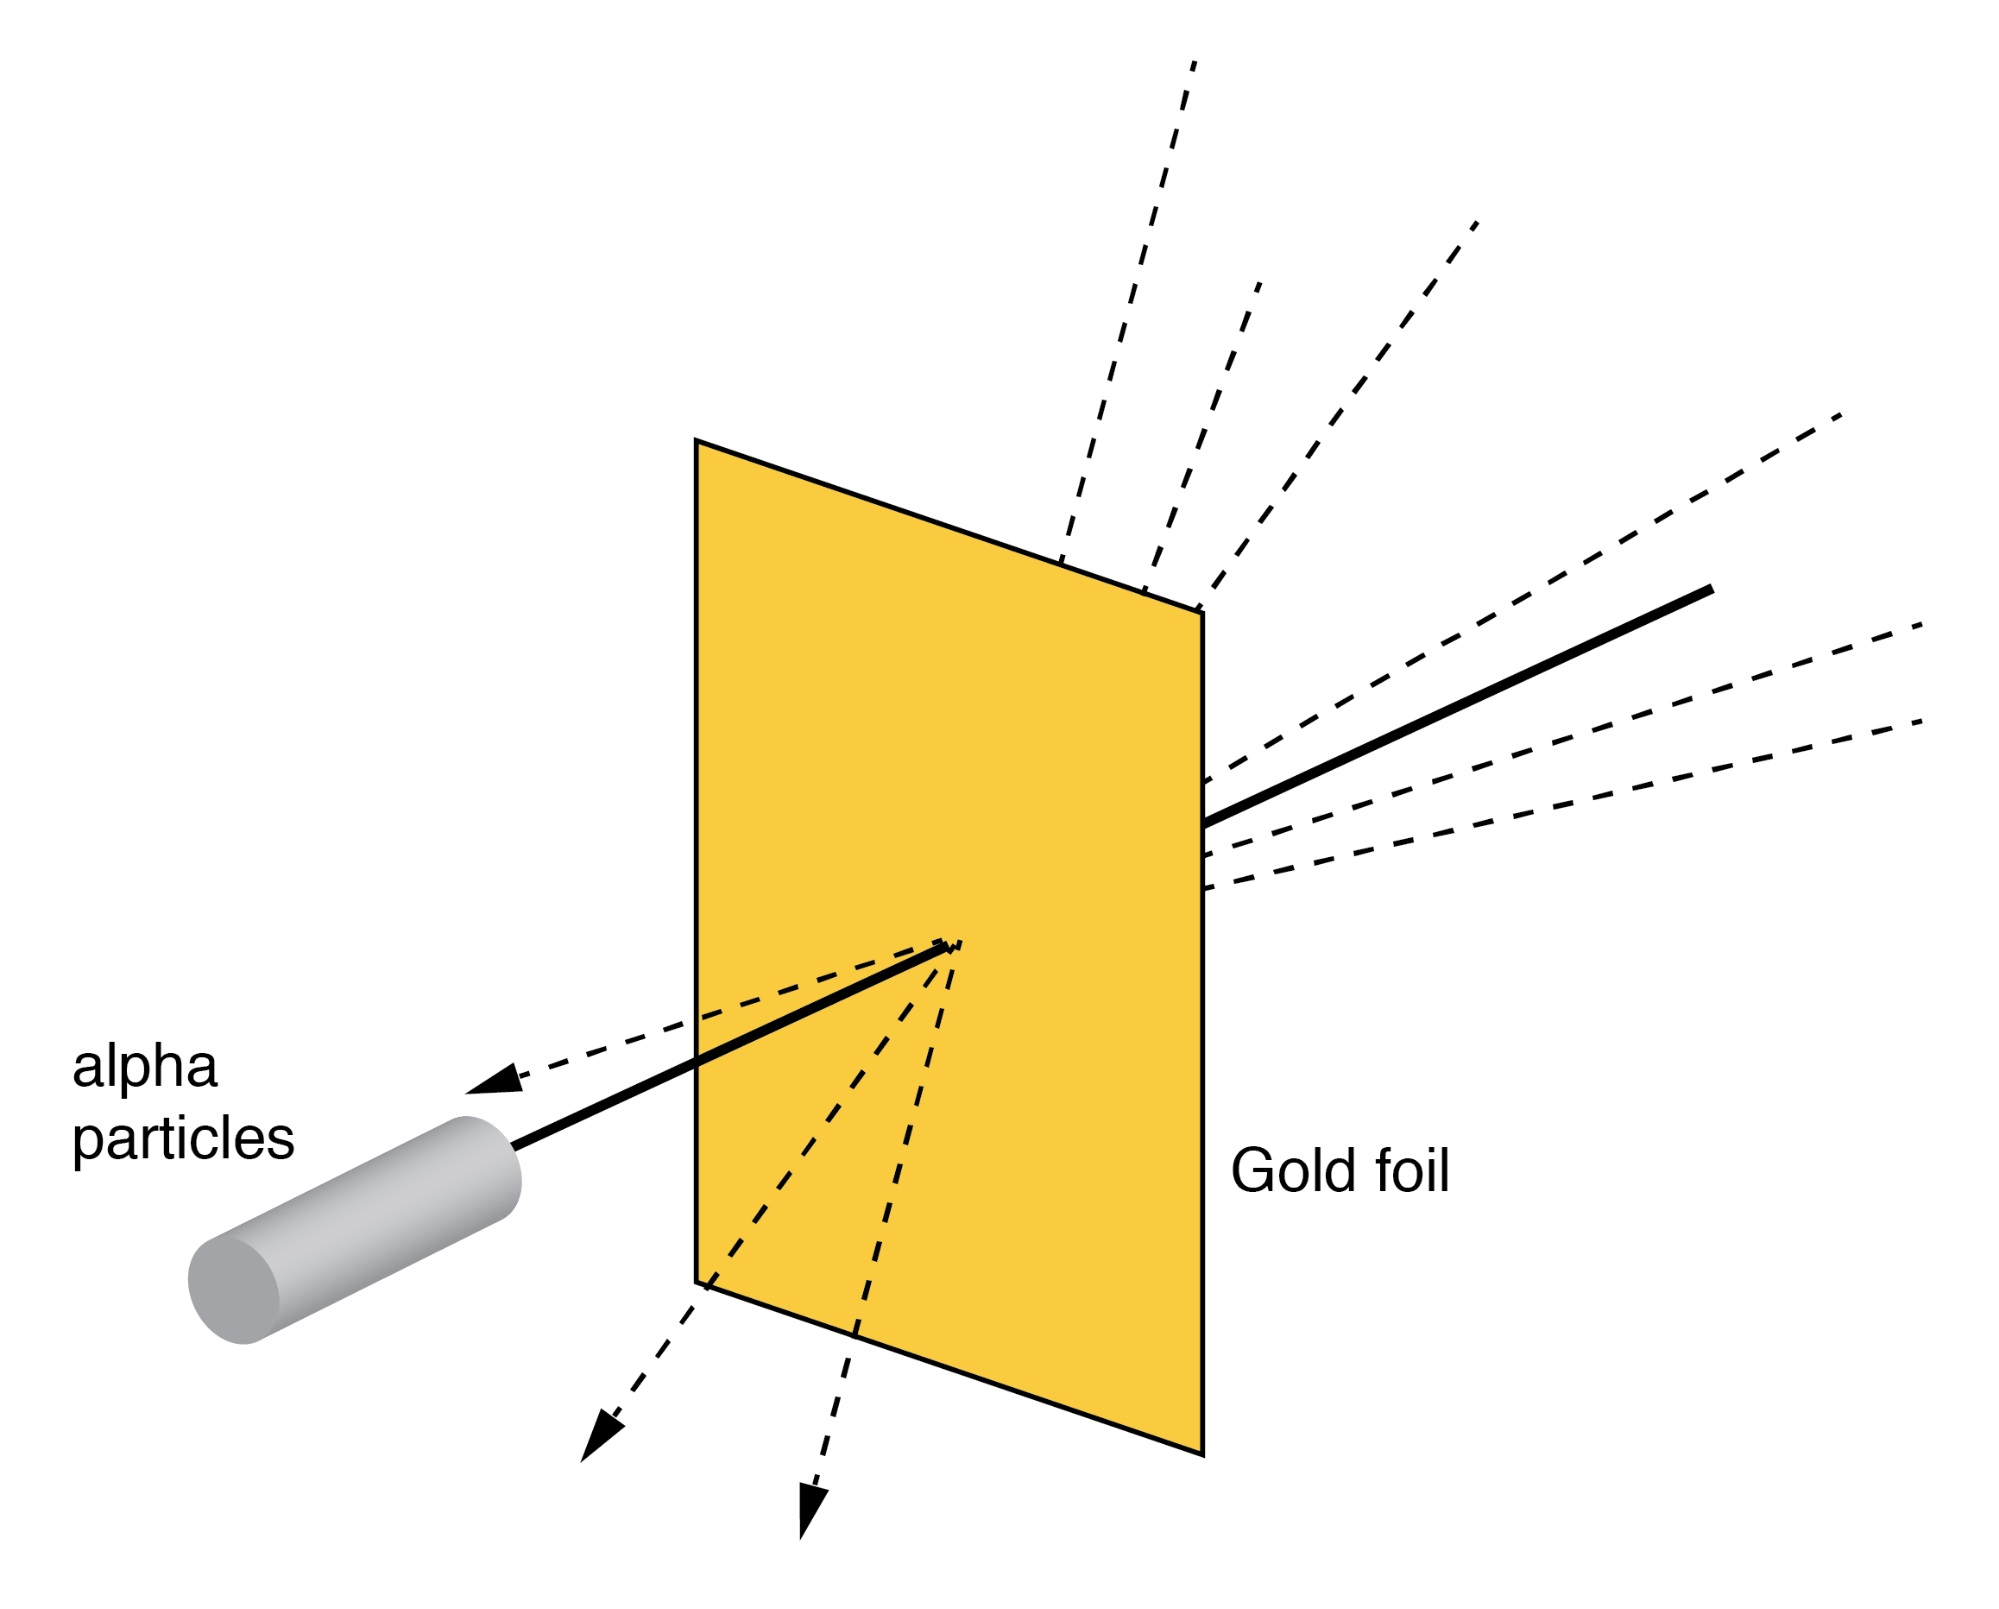 Rutherford scattering: a beam of alpha particles is scattered by a thin gold foil.